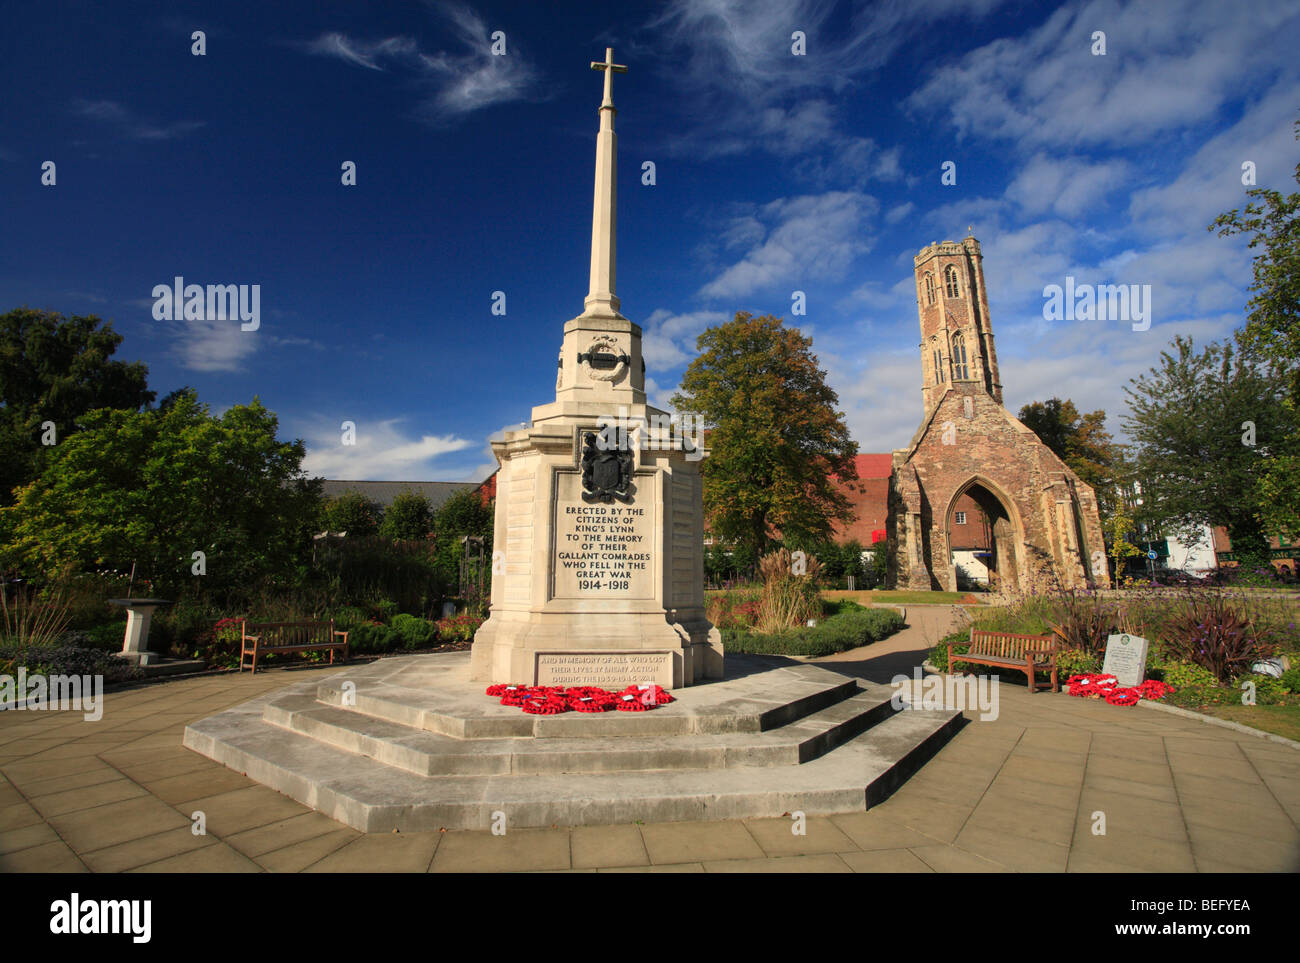 Picturesque Remembrance Gardens Stock Photos  Remembrance Gardens Stock  With Entrancing The War Memorial And Greyfriars Tower In Tower Gardens Kings Lynn  Norfolk  Stock With Agreeable Garden Gates Leeds Also Blackpool Winter Gardens In Addition Torture Garden Dress Code And Hoyts Garden City Session Times As Well As London Rooftop Garden Additionally Raised Garden Bed With Bottom From Alamycom With   Entrancing Remembrance Gardens Stock Photos  Remembrance Gardens Stock  With Agreeable The War Memorial And Greyfriars Tower In Tower Gardens Kings Lynn  Norfolk  Stock And Picturesque Garden Gates Leeds Also Blackpool Winter Gardens In Addition Torture Garden Dress Code From Alamycom